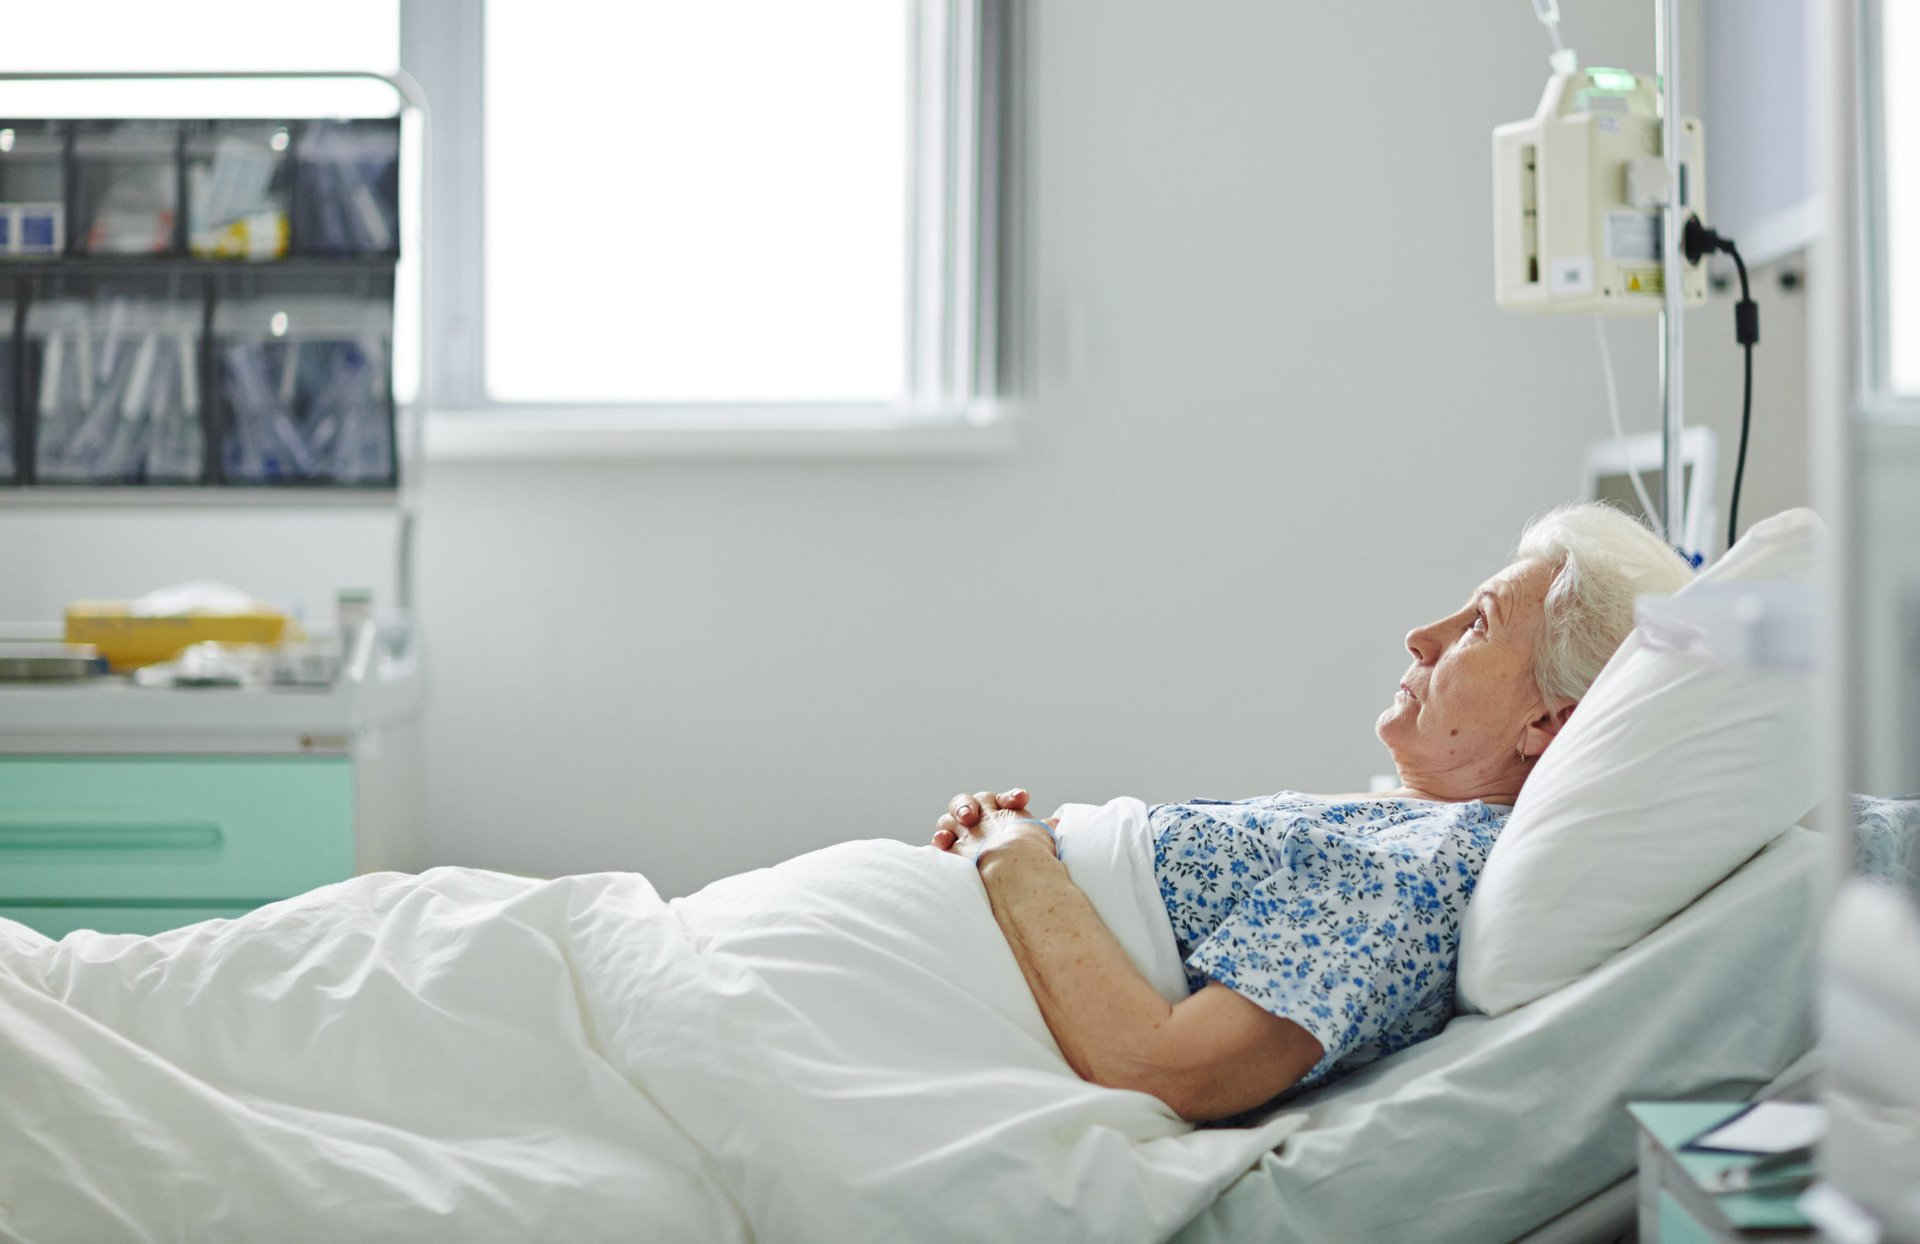 Senior lying in a hospital bed